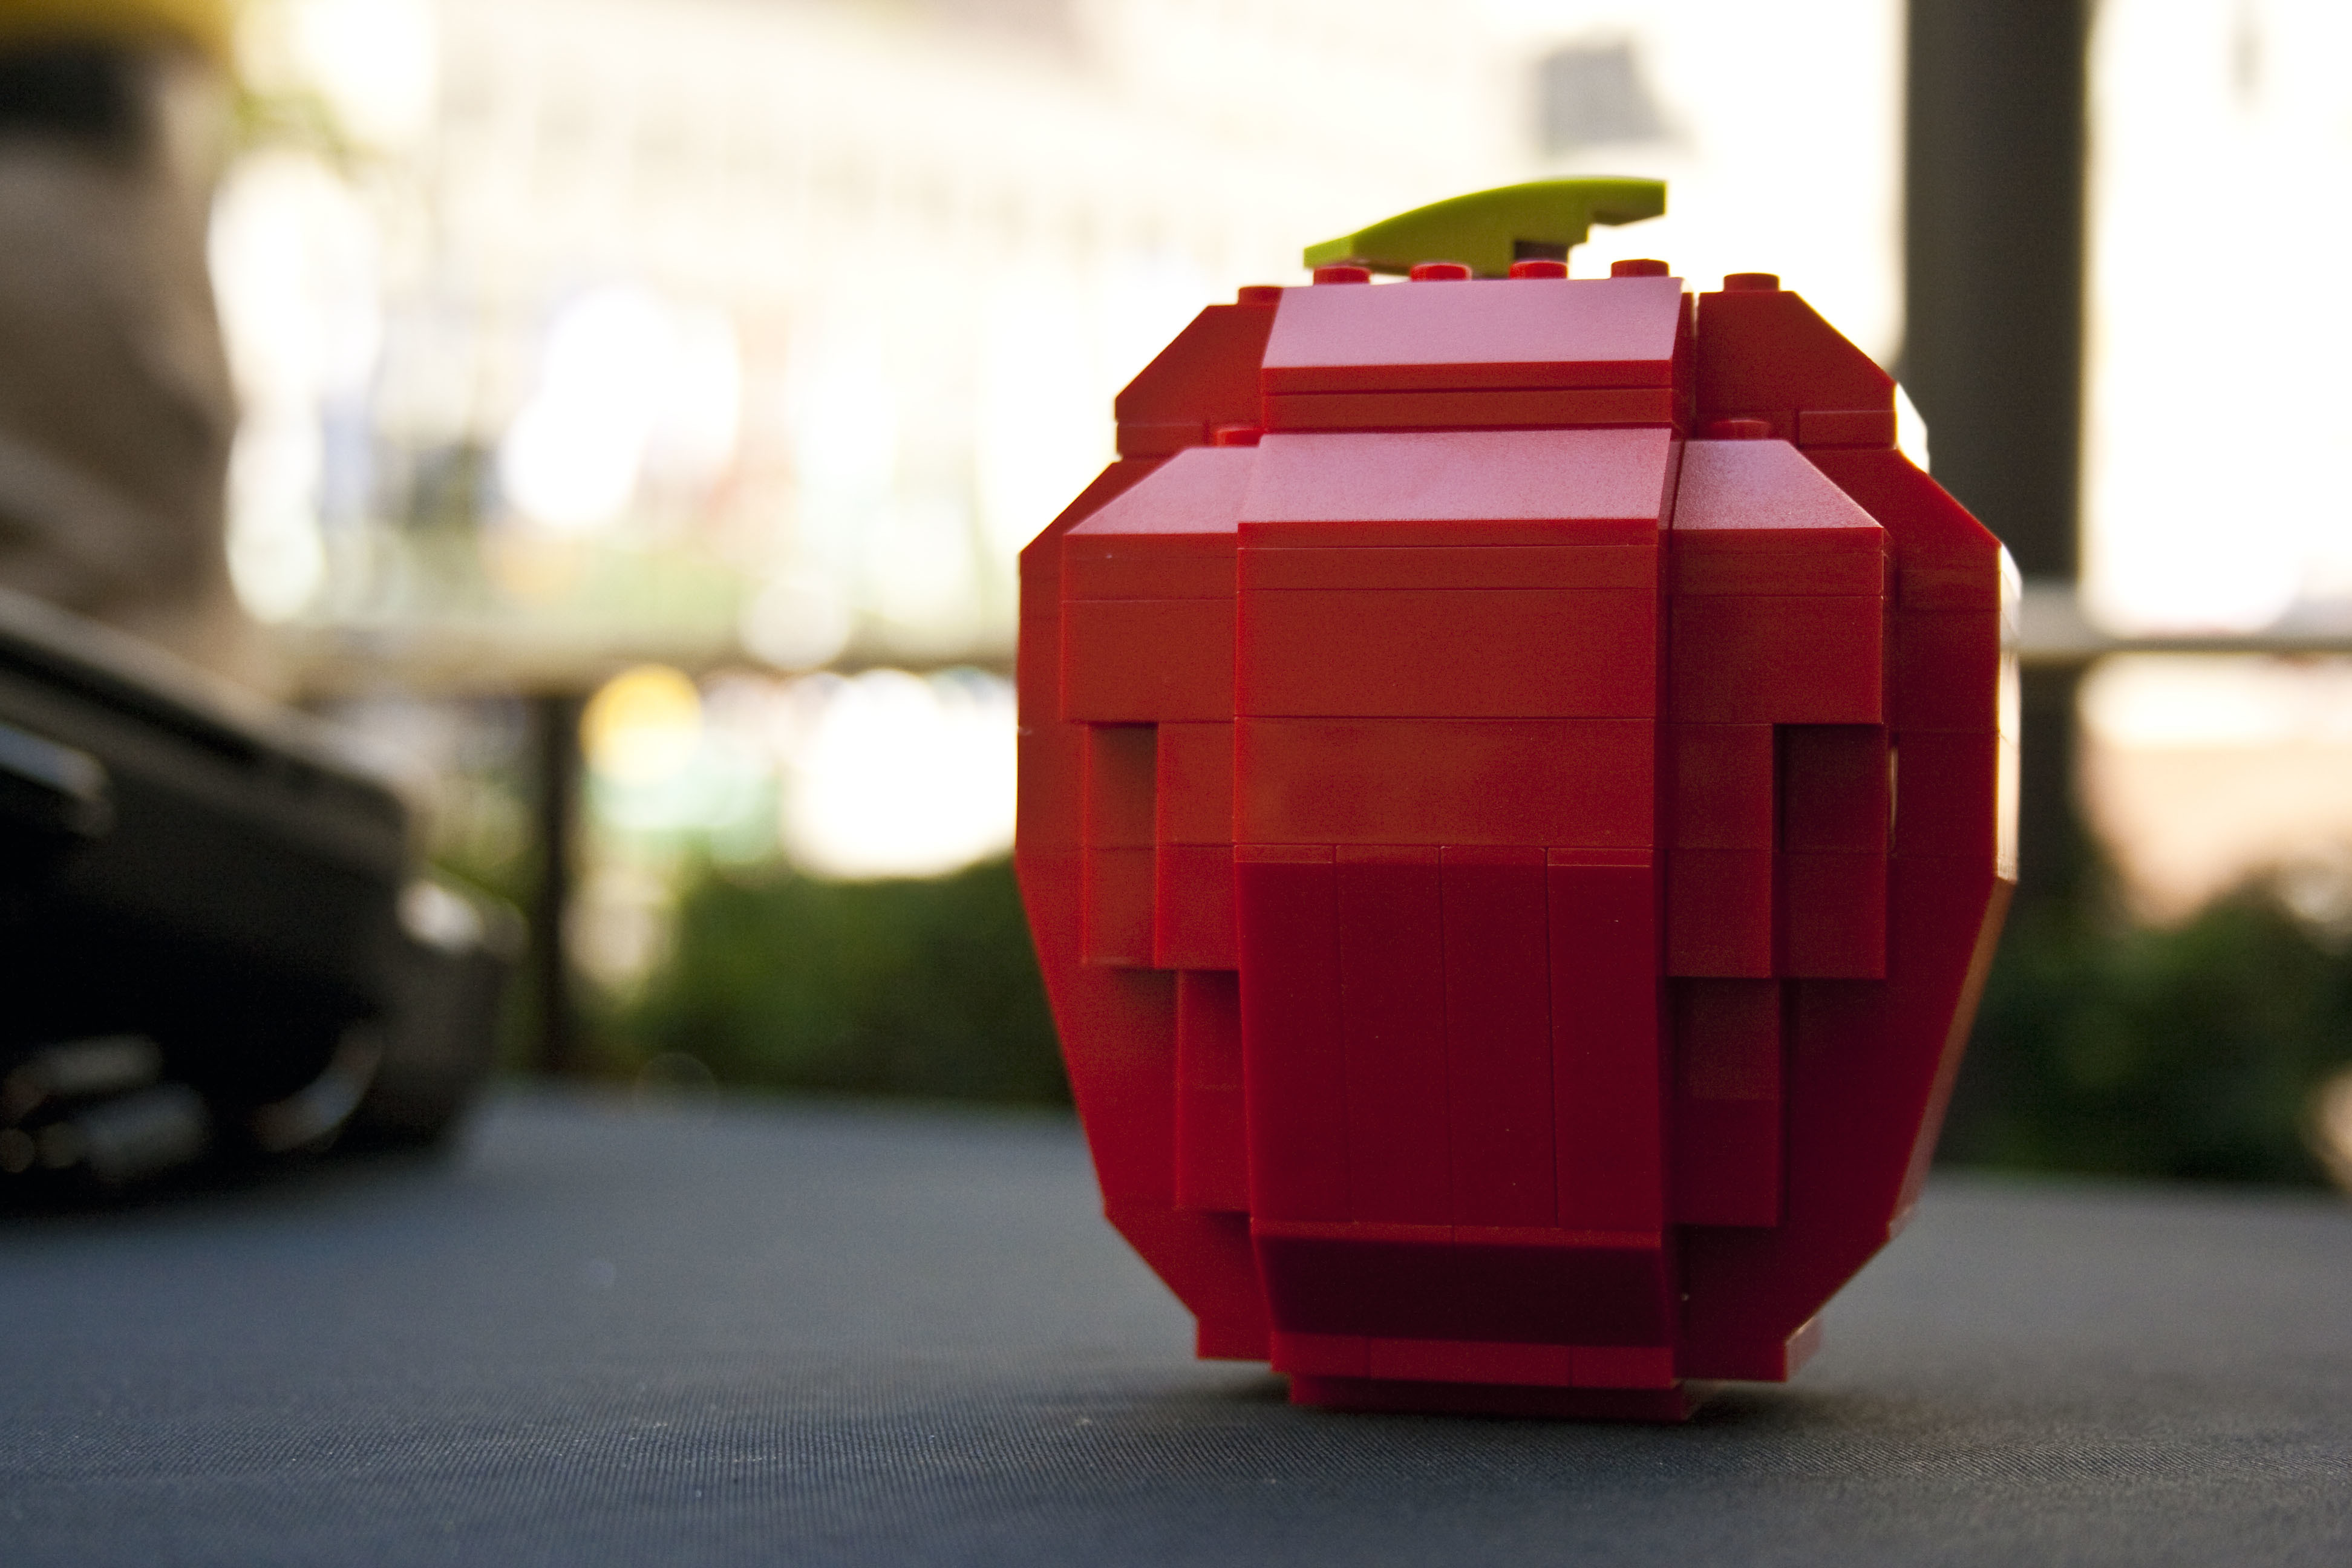 Lego apples game HD Wallpaper